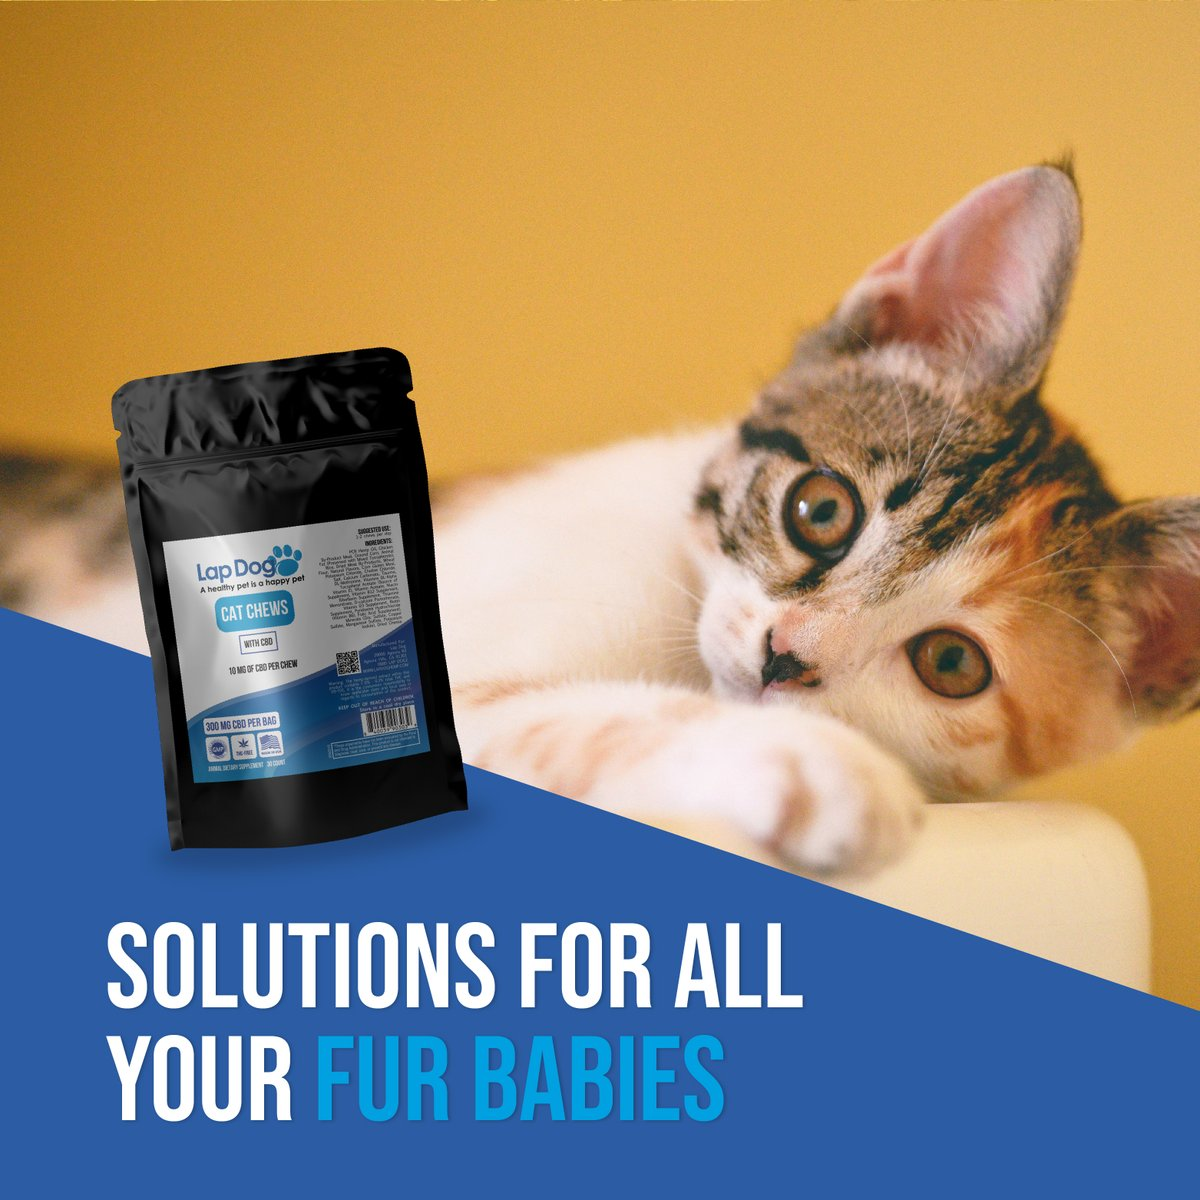 🐱 Solutions for all your fur babies! 🐰 #lapdog #cbd #pet #petsolutions https://t.co/VnWz99TKHU